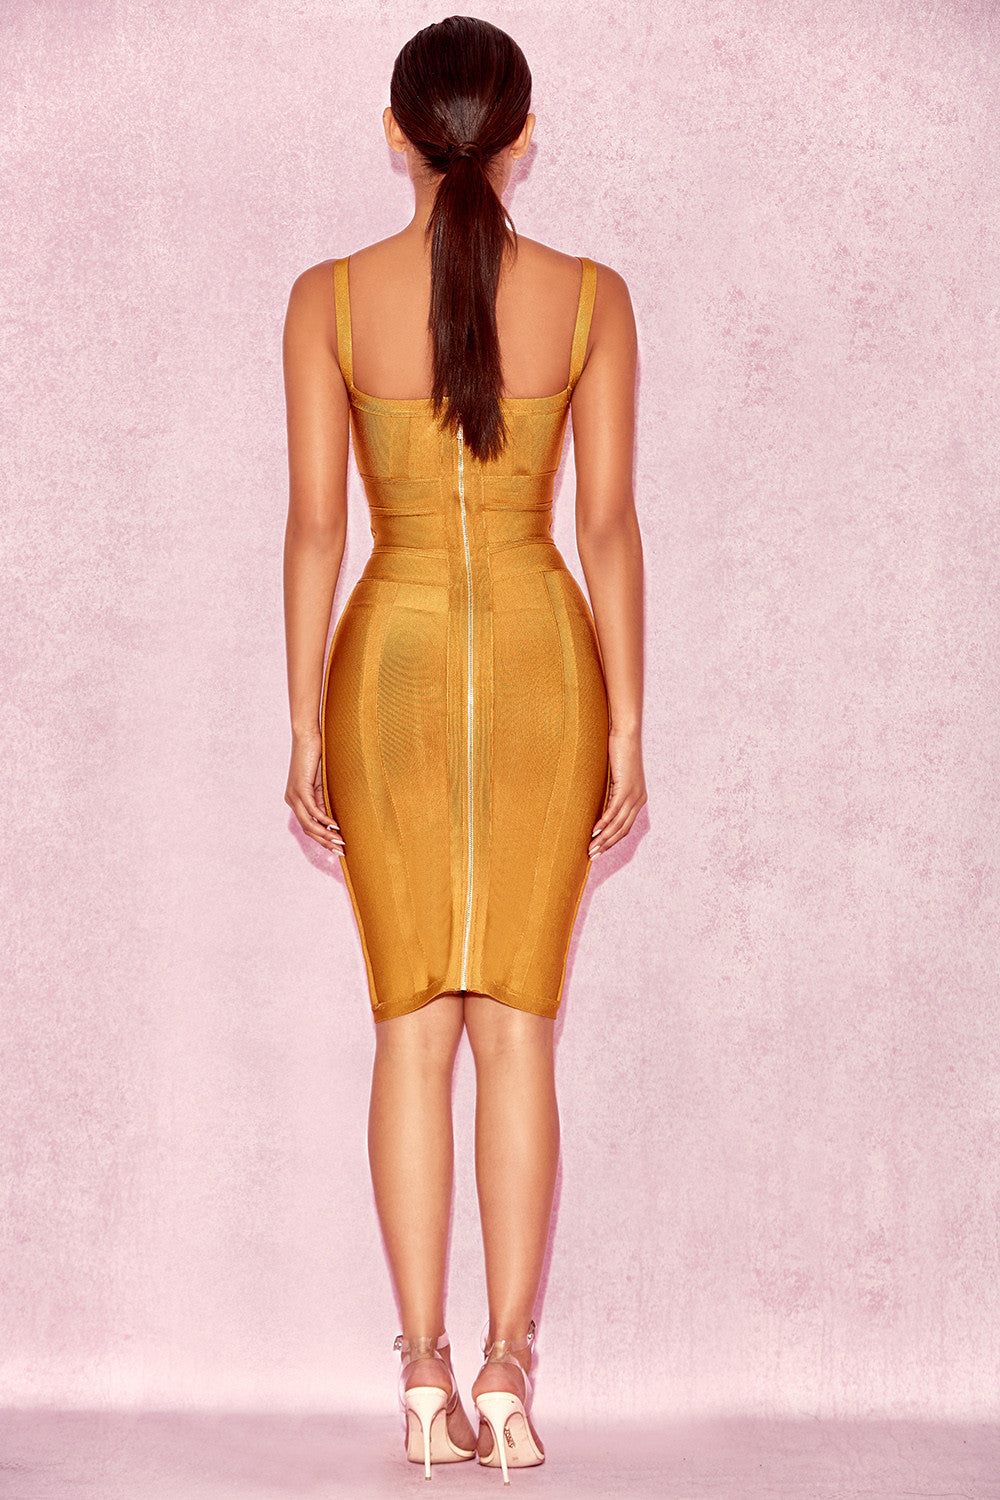 mustard yellow bandage dress